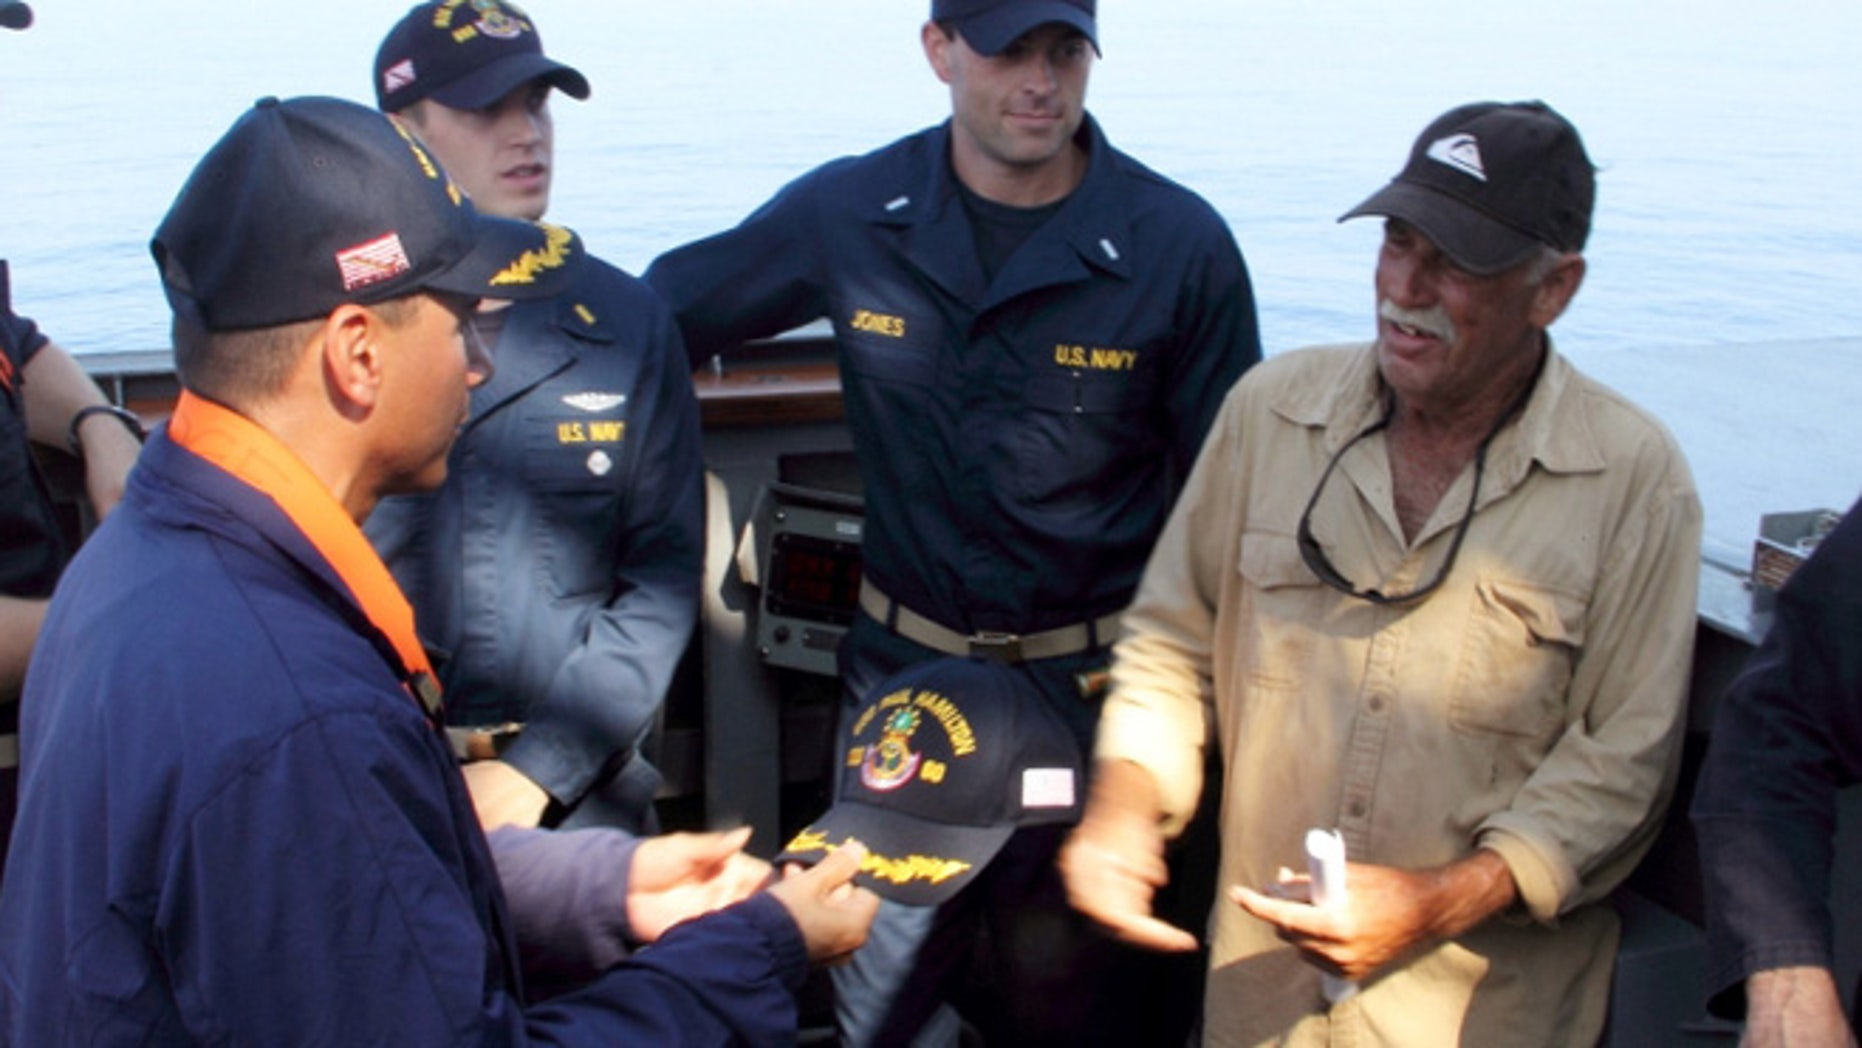 In this photo provided by the U.S. Navy, Cmdr. John Barsano, welcomes Ron Ingraham aboard the Arleigh Burke-class guided-missile destroyer USS Paul Hamilton after rescuing him  near Hawaii.